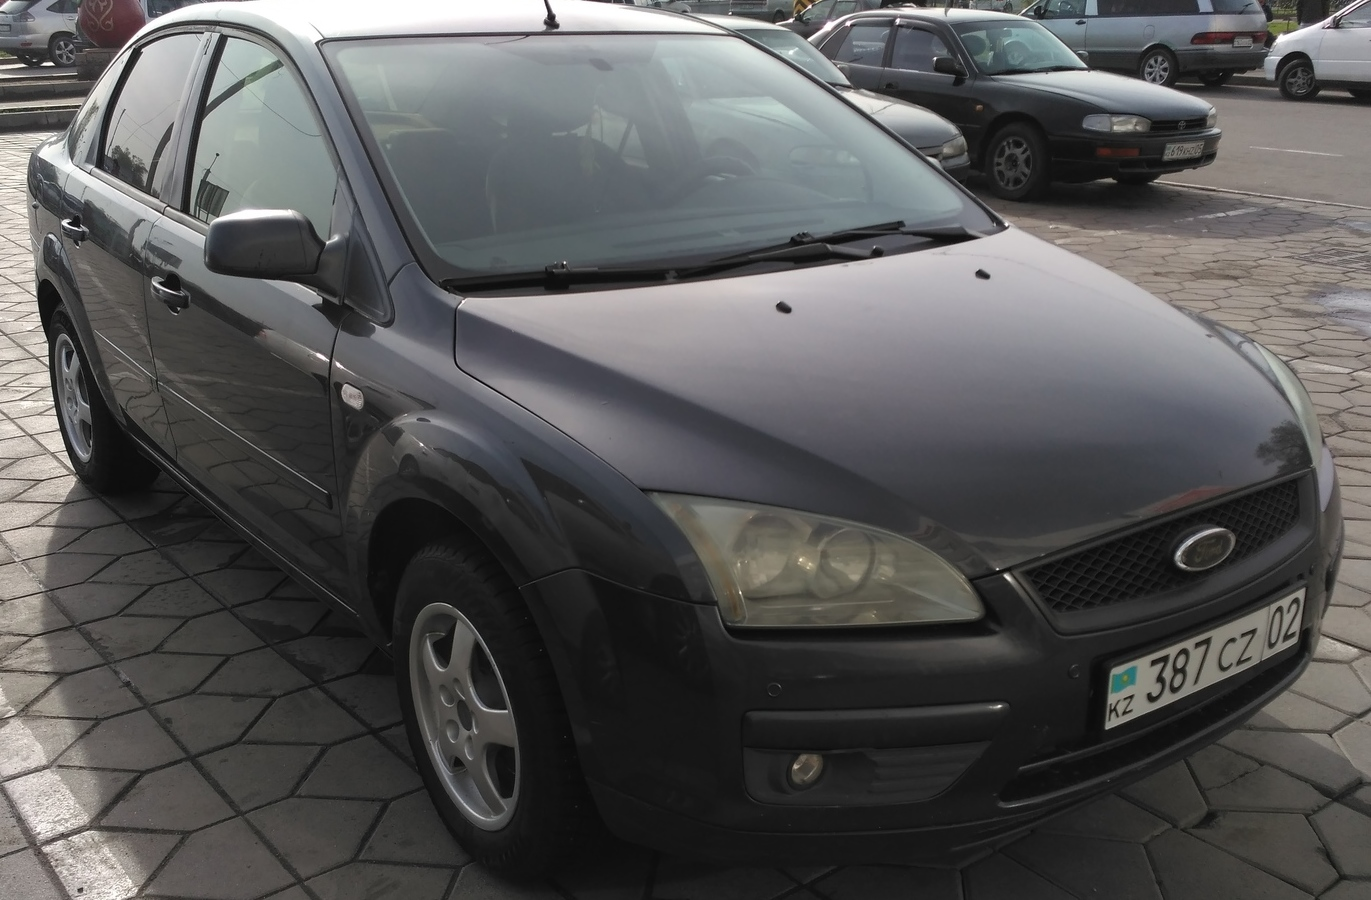 "<span style=""font-weight: bold;"">Ford Focus 2007 год. Сдан в Аренду</span>!&nbsp;"